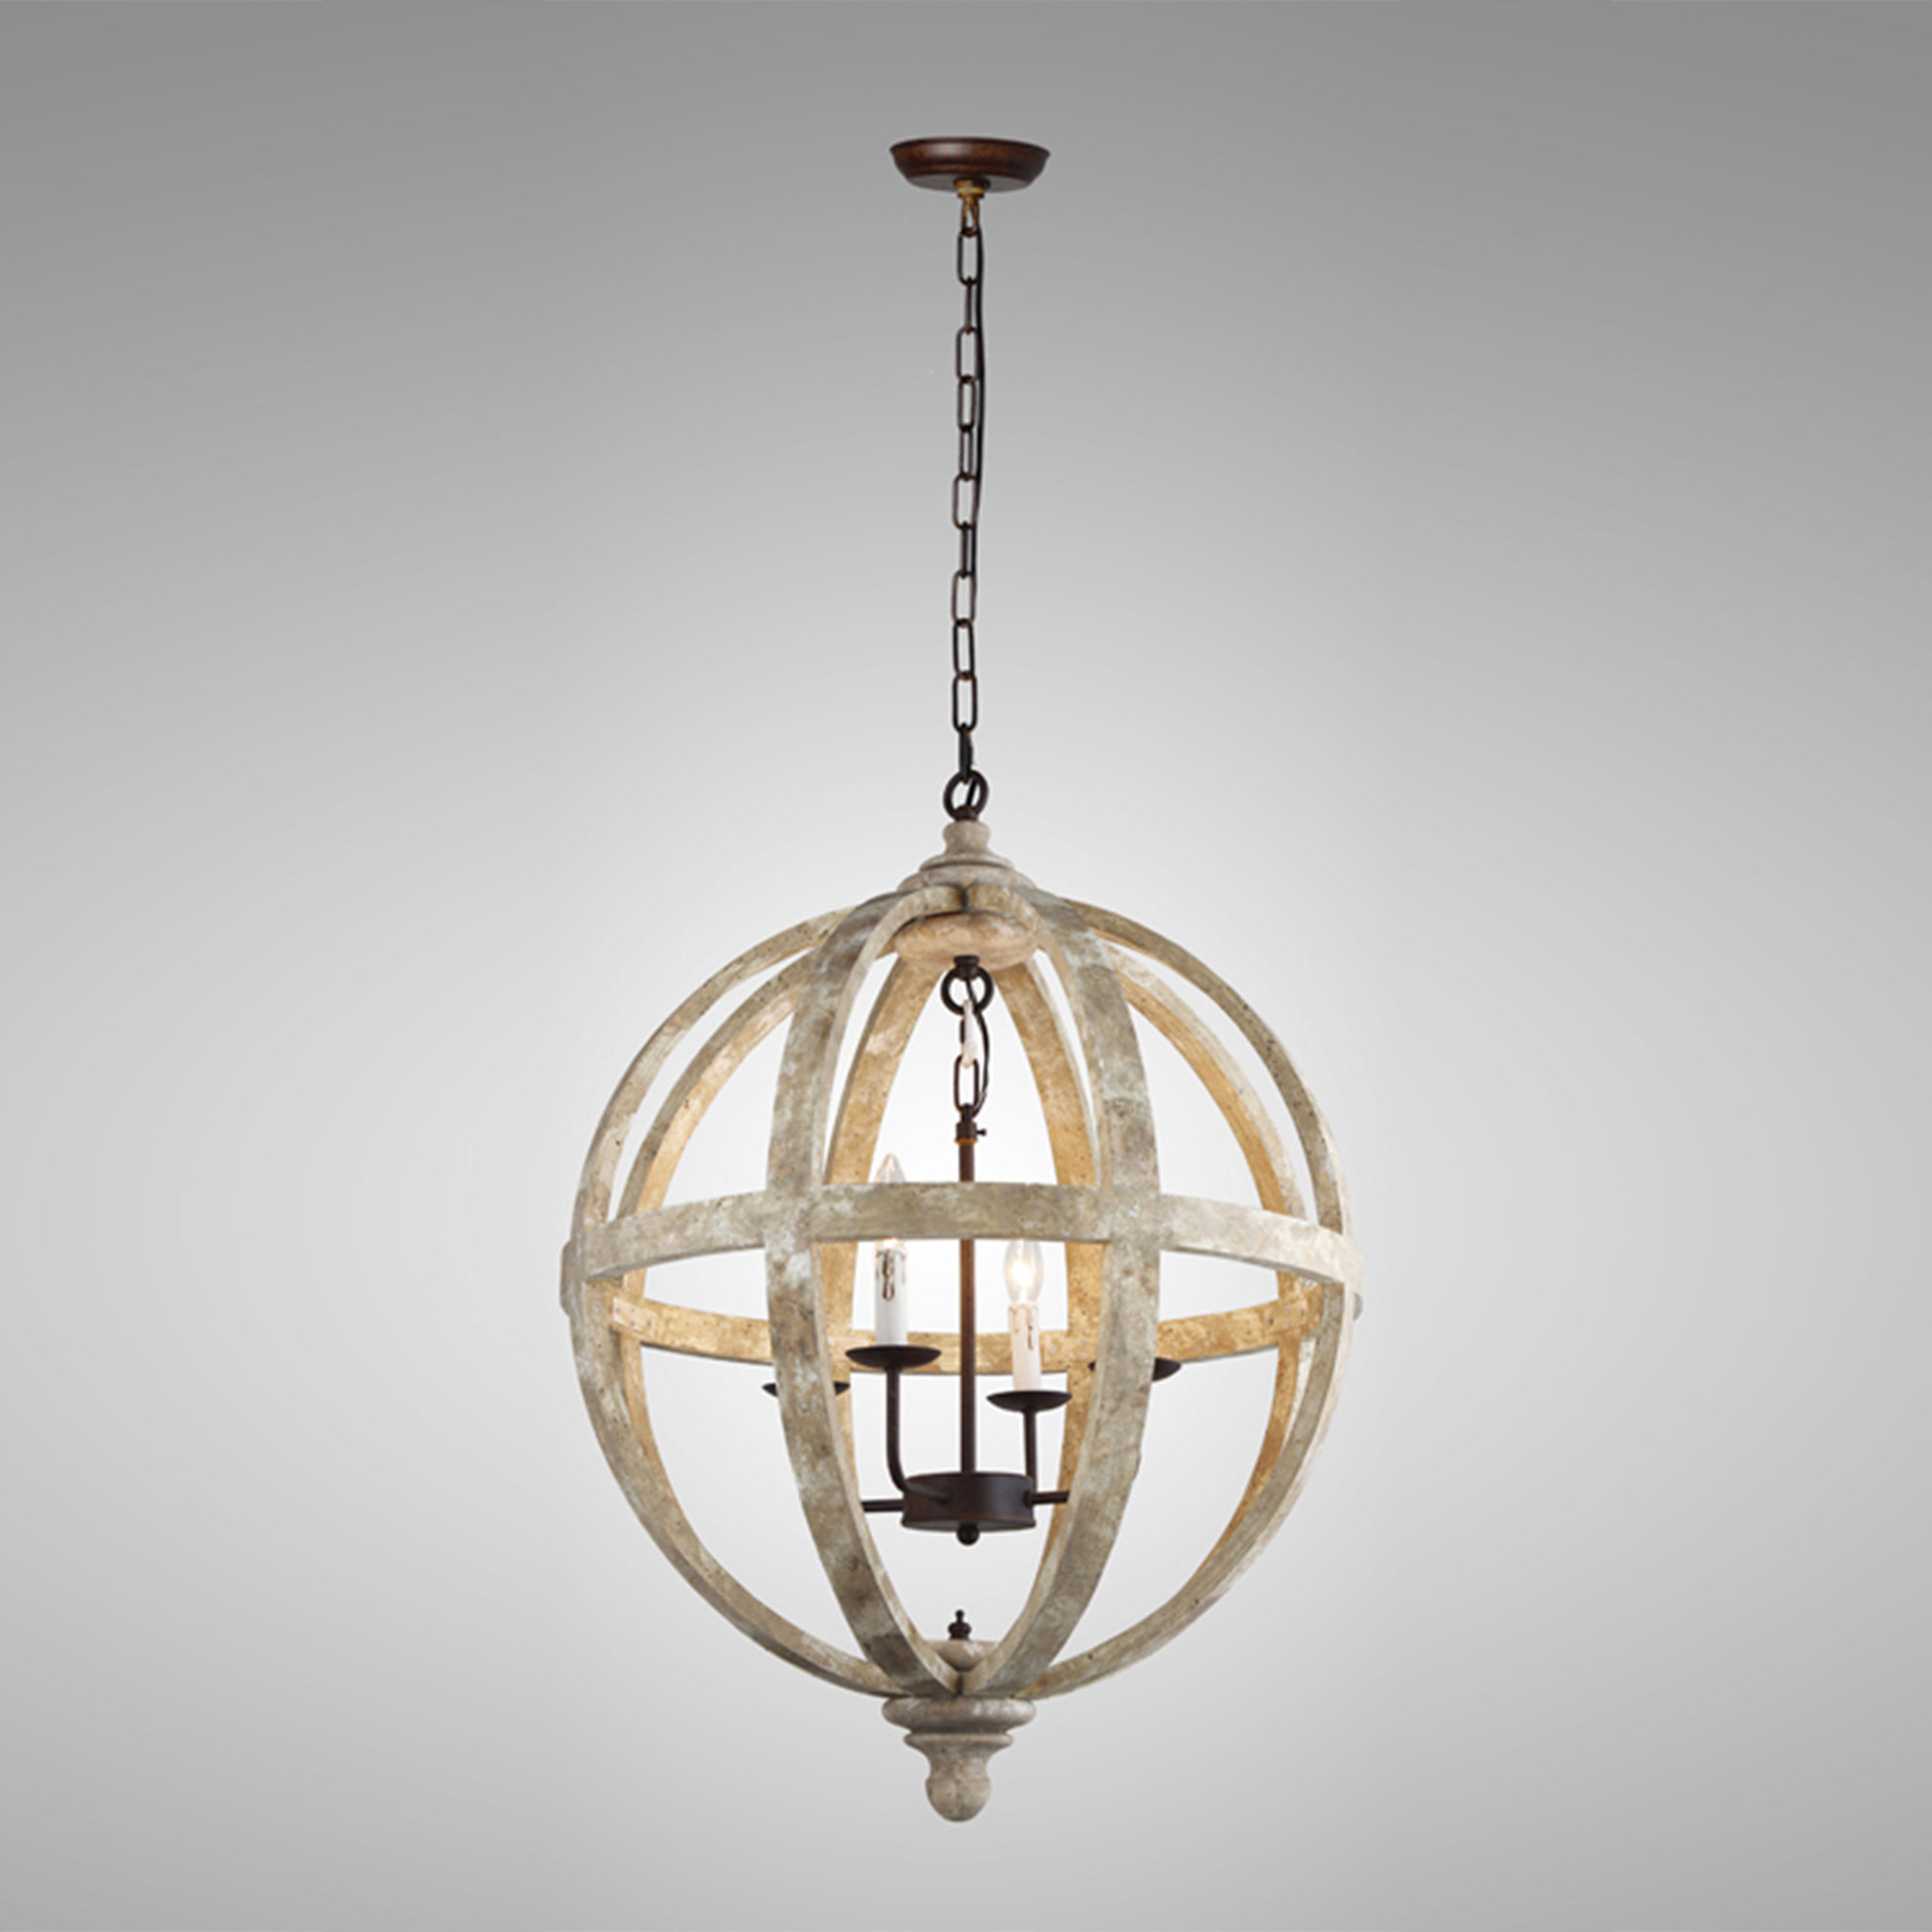 Ryne 4 Light Globe Chandelier With Regard To Well Known Cavanagh 4 Light Geometric Chandeliers (View 14 of 20)